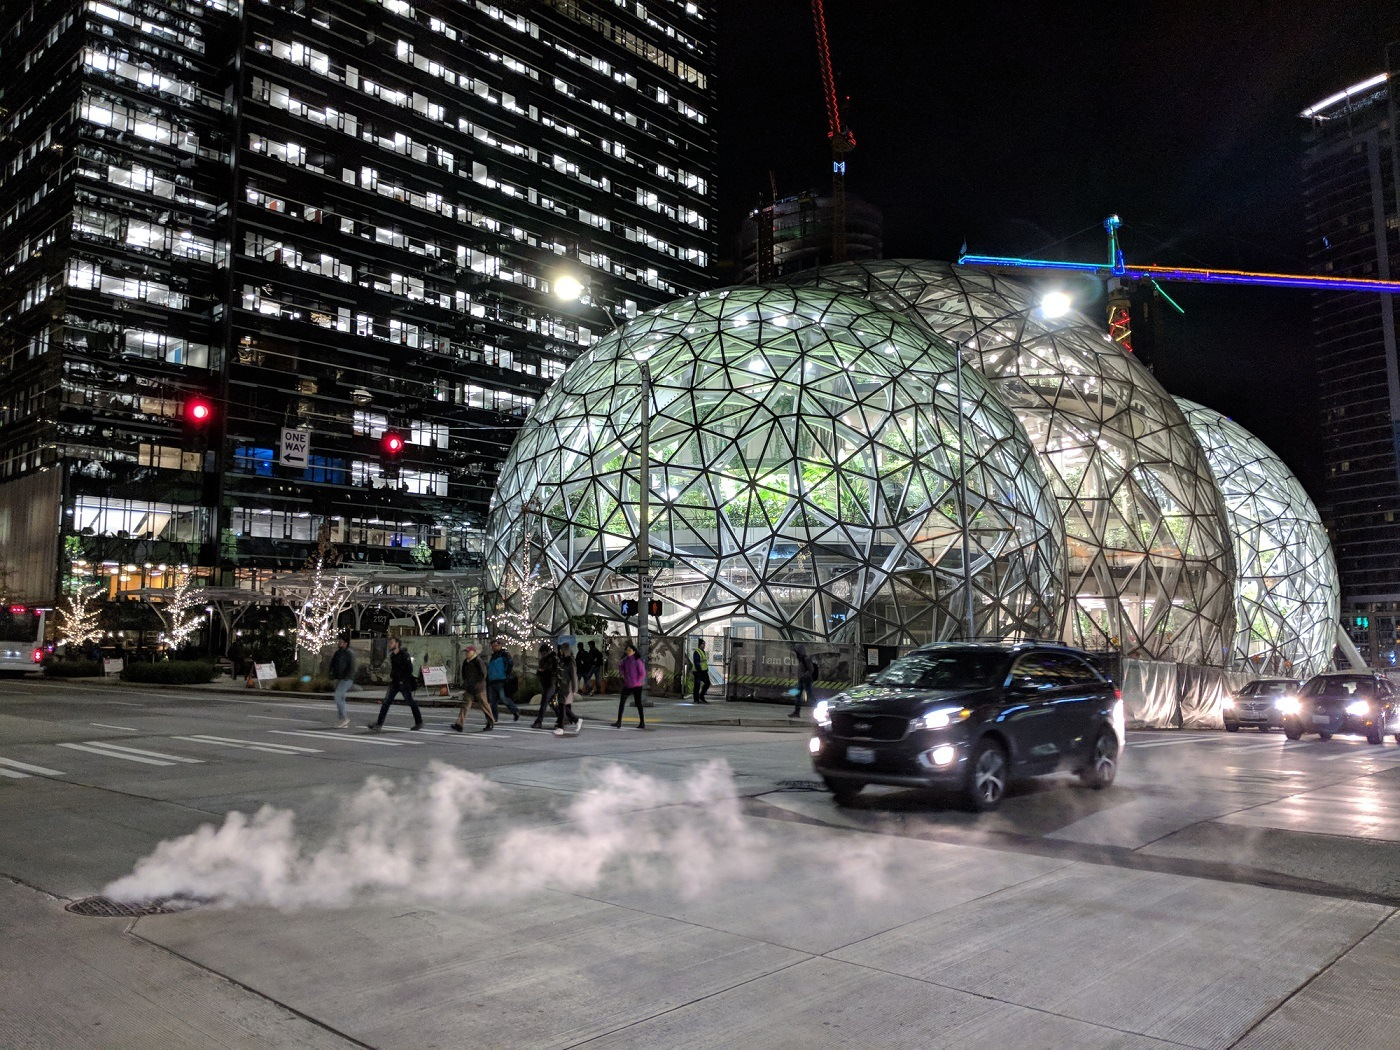 Workers Leave the Offices Outside Amazon Headquarters and Biosphere Domes